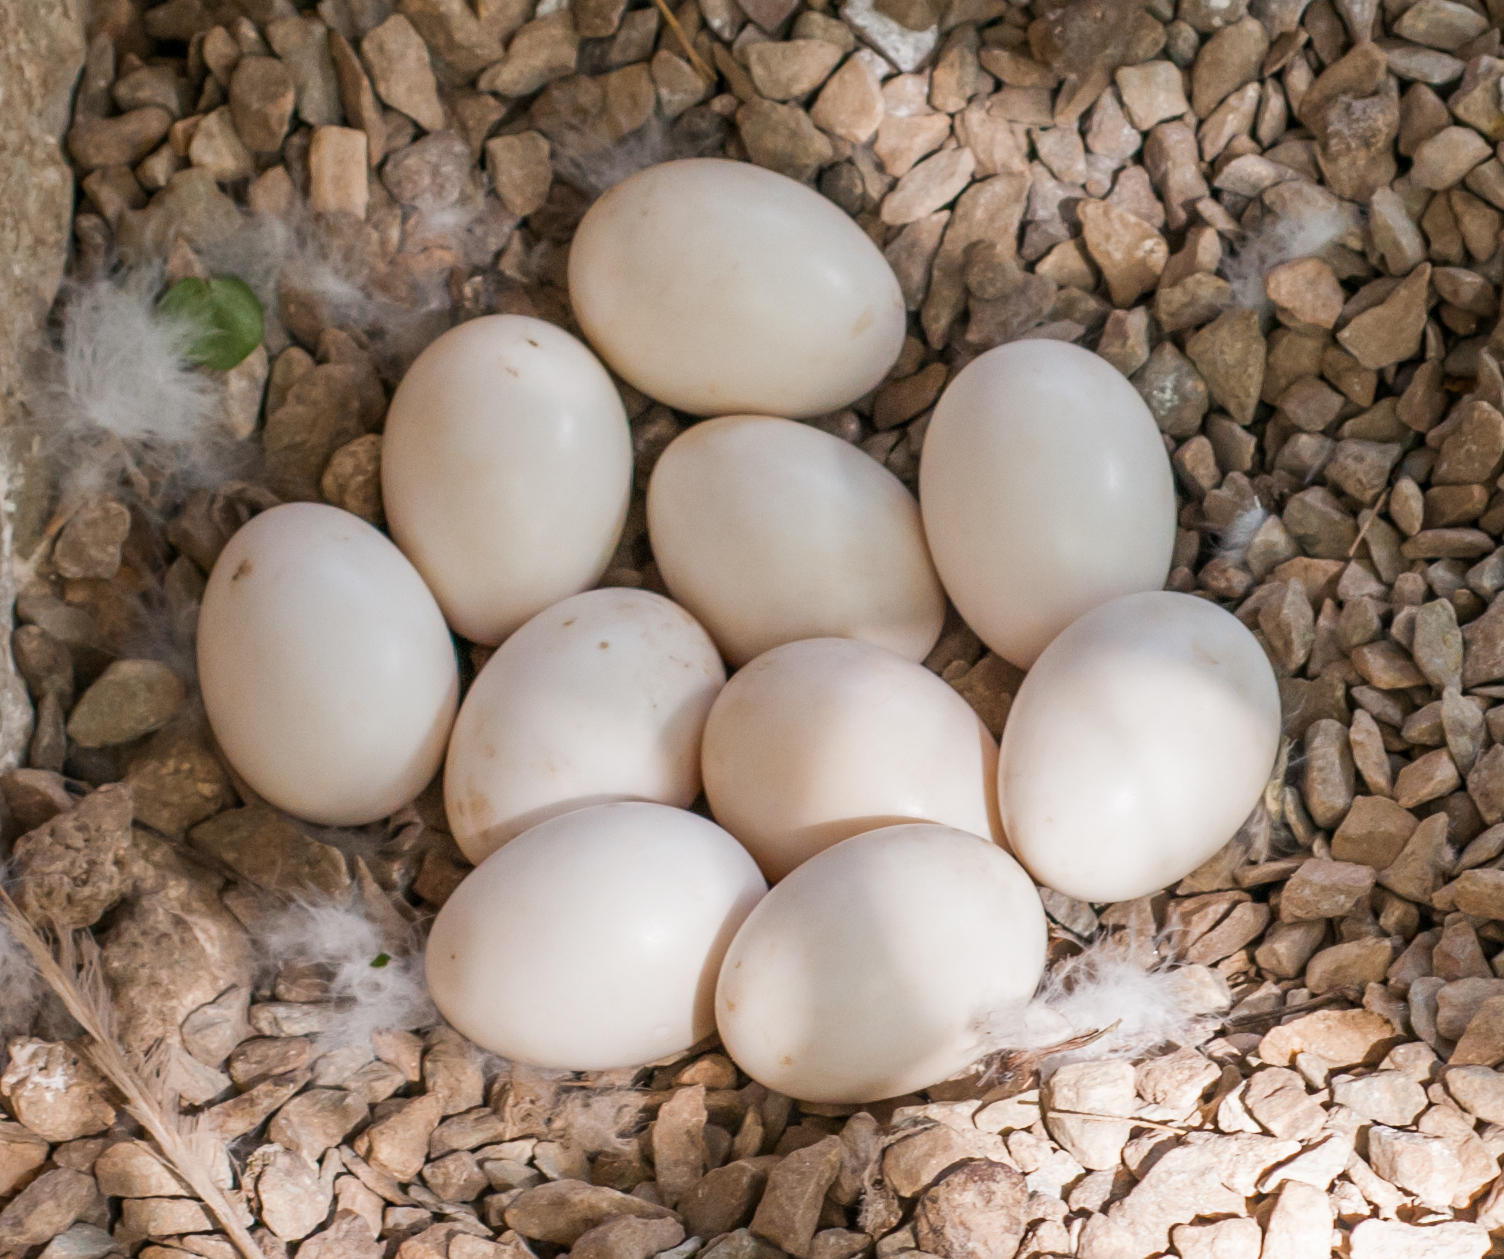 How Many Eggs Can a Duck or Chicken Lay in One Year?